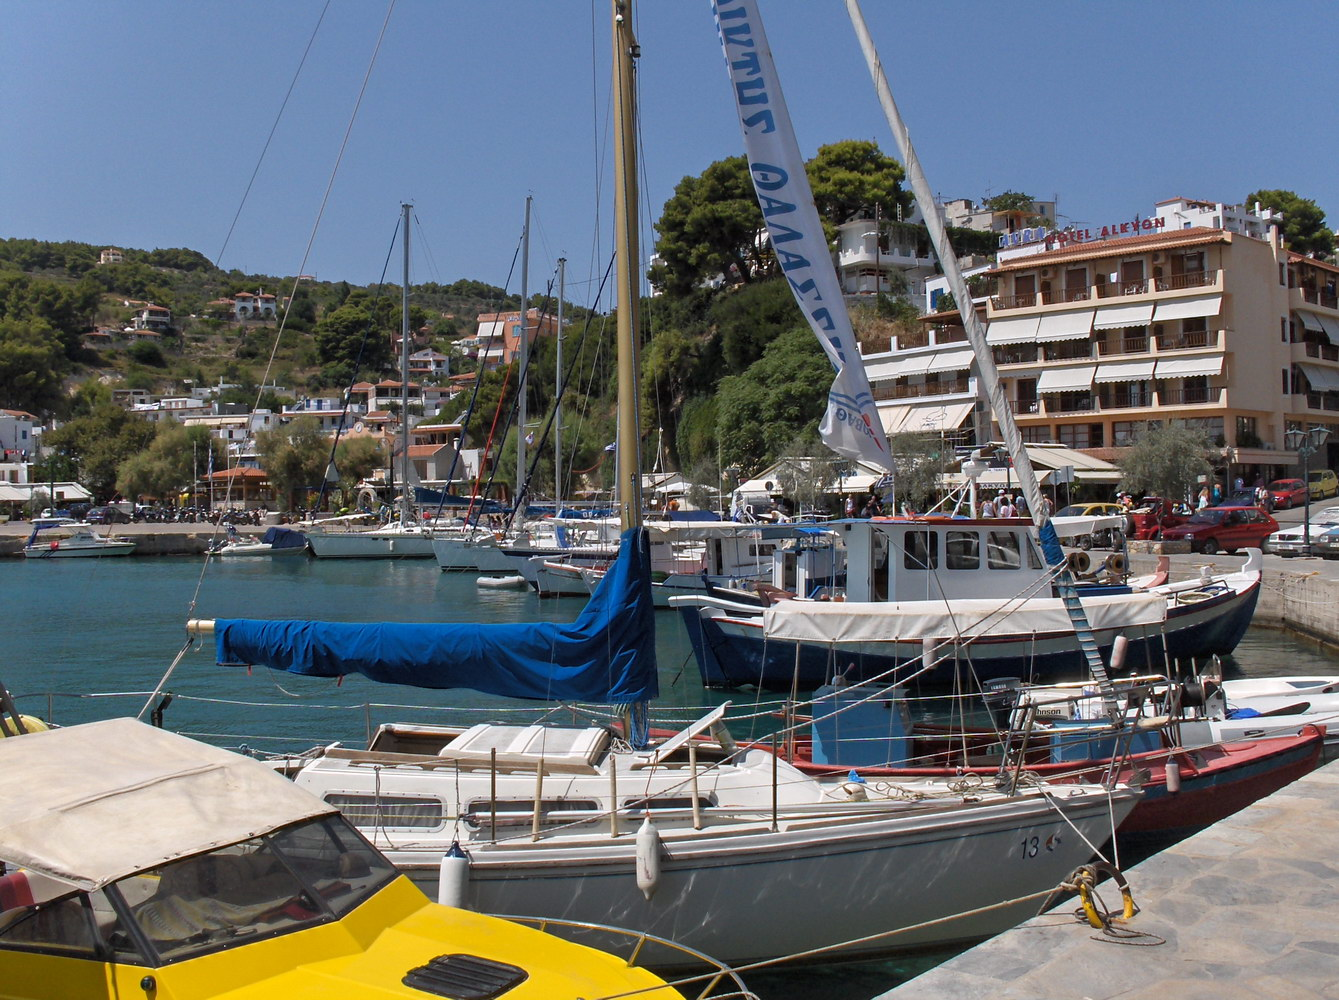 Alonissos – Travel guide at Wikivoyage